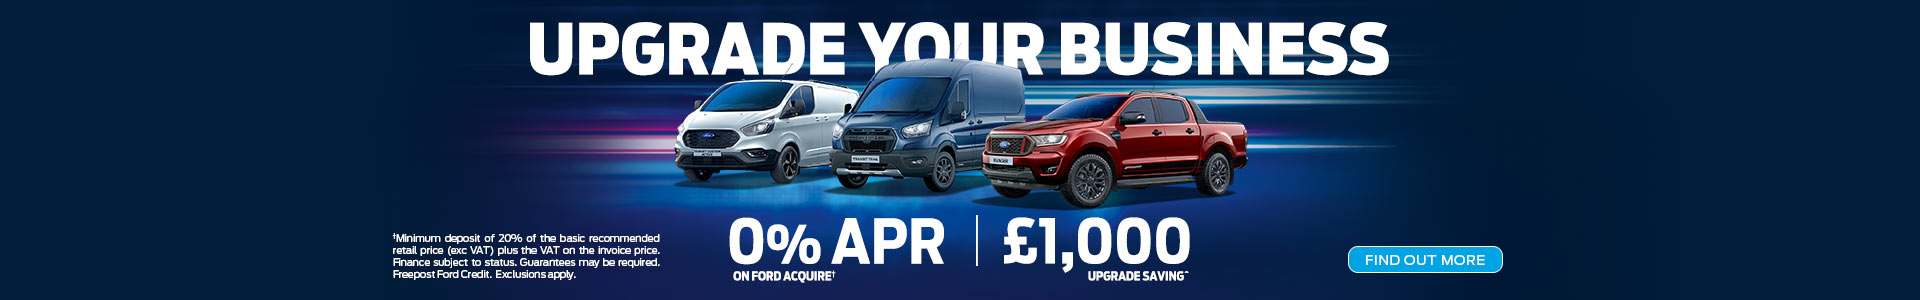 Upgrade Your Business save £1000 and 0% APR available